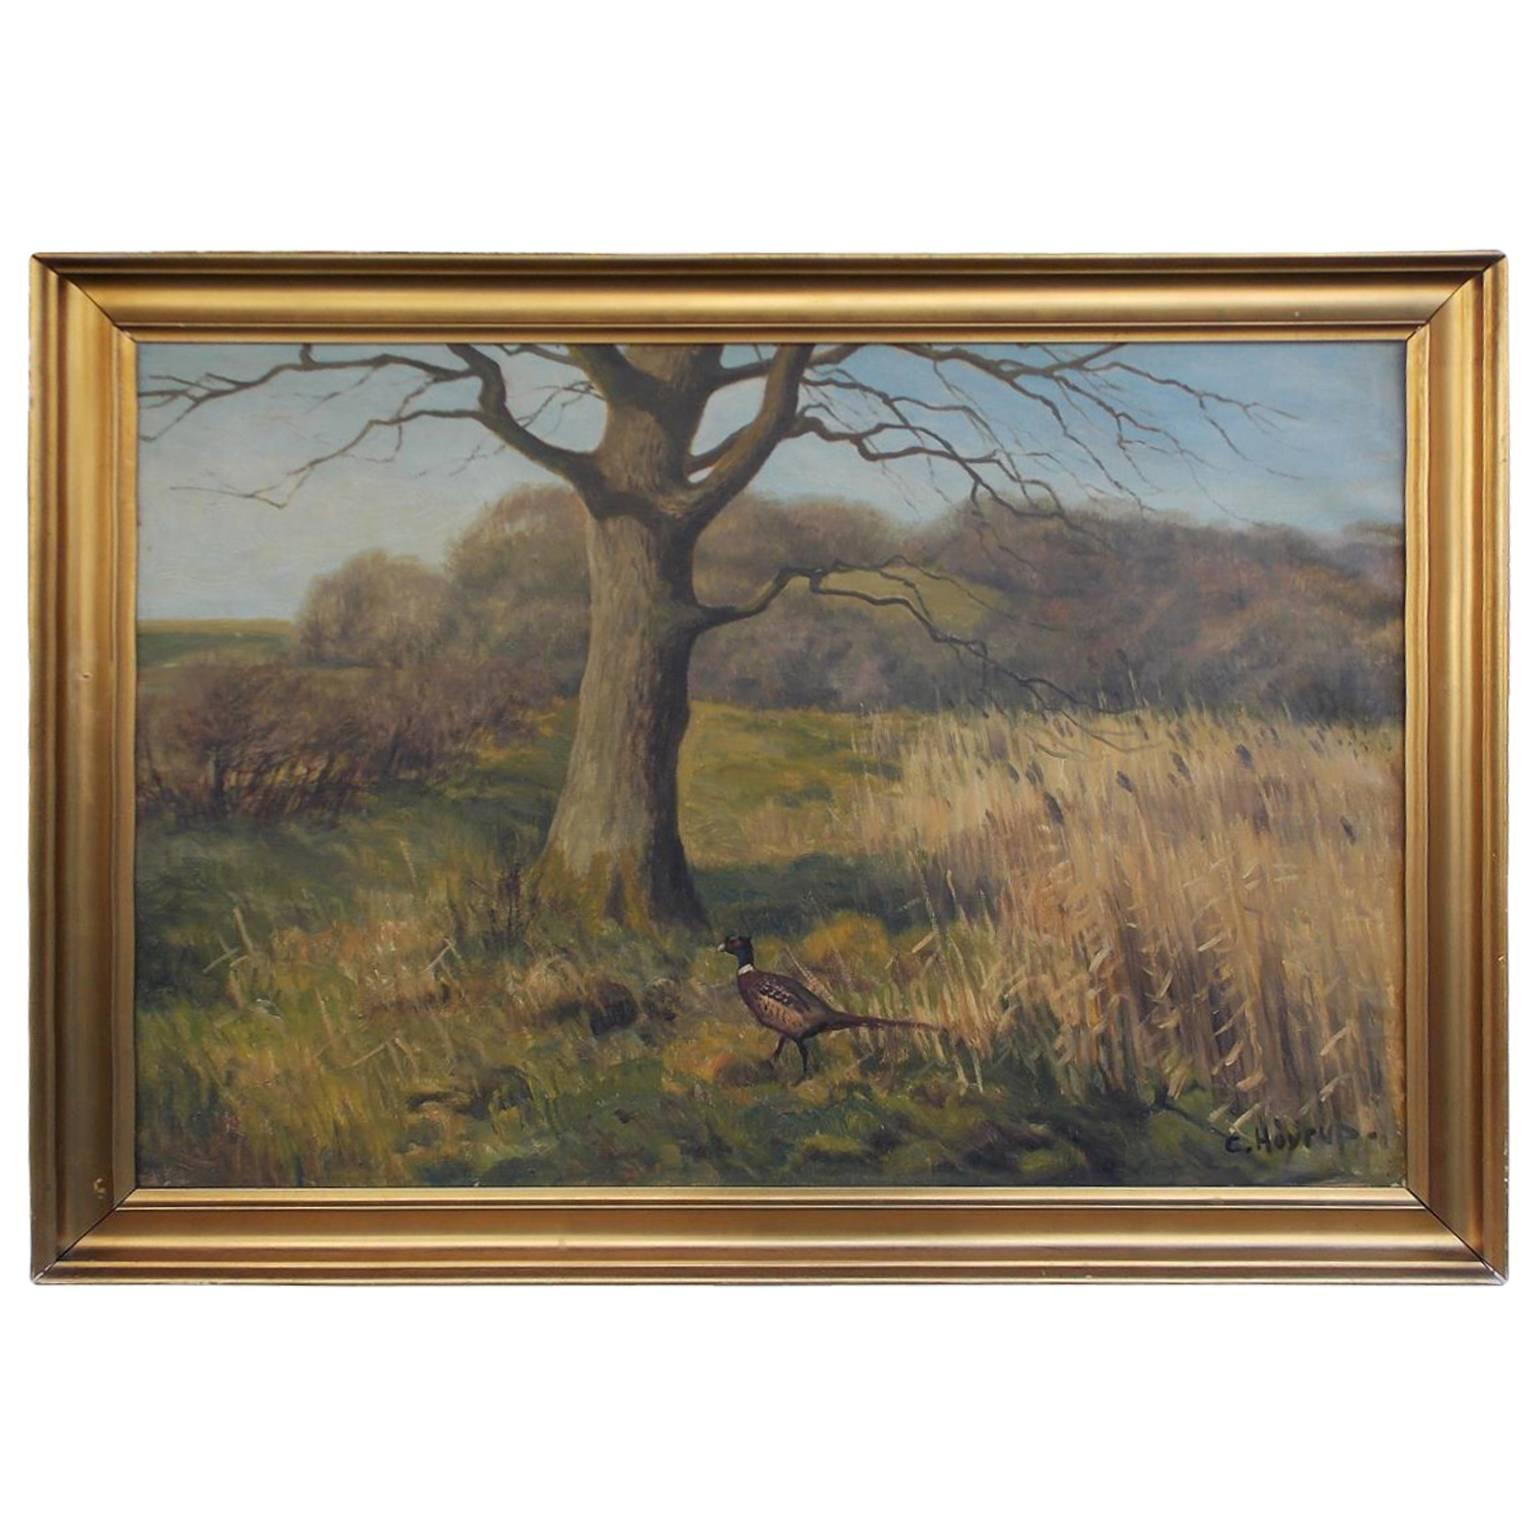 Oil on Canvas of Landscape with Pheasant, Signed C Hoyrup, 20th Century